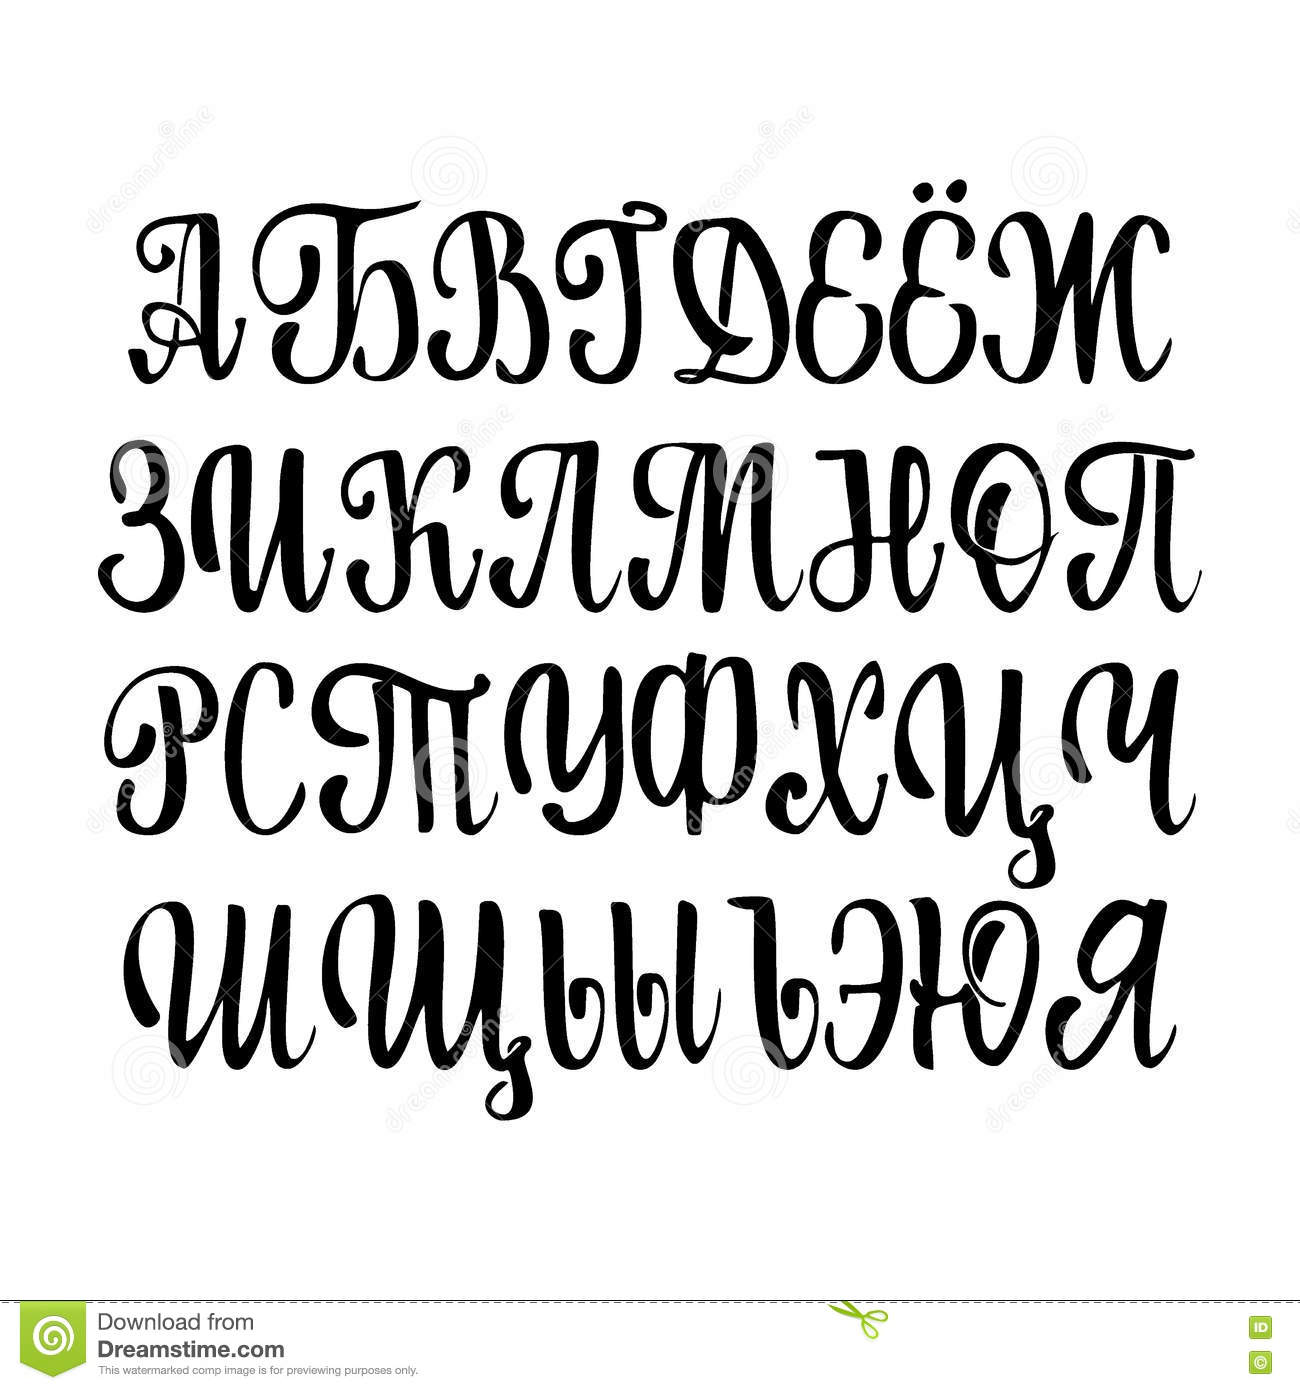 Cyrillic Alphabet On The Basis Of Handwriting Calligraphy Modern Cursive Script Brush